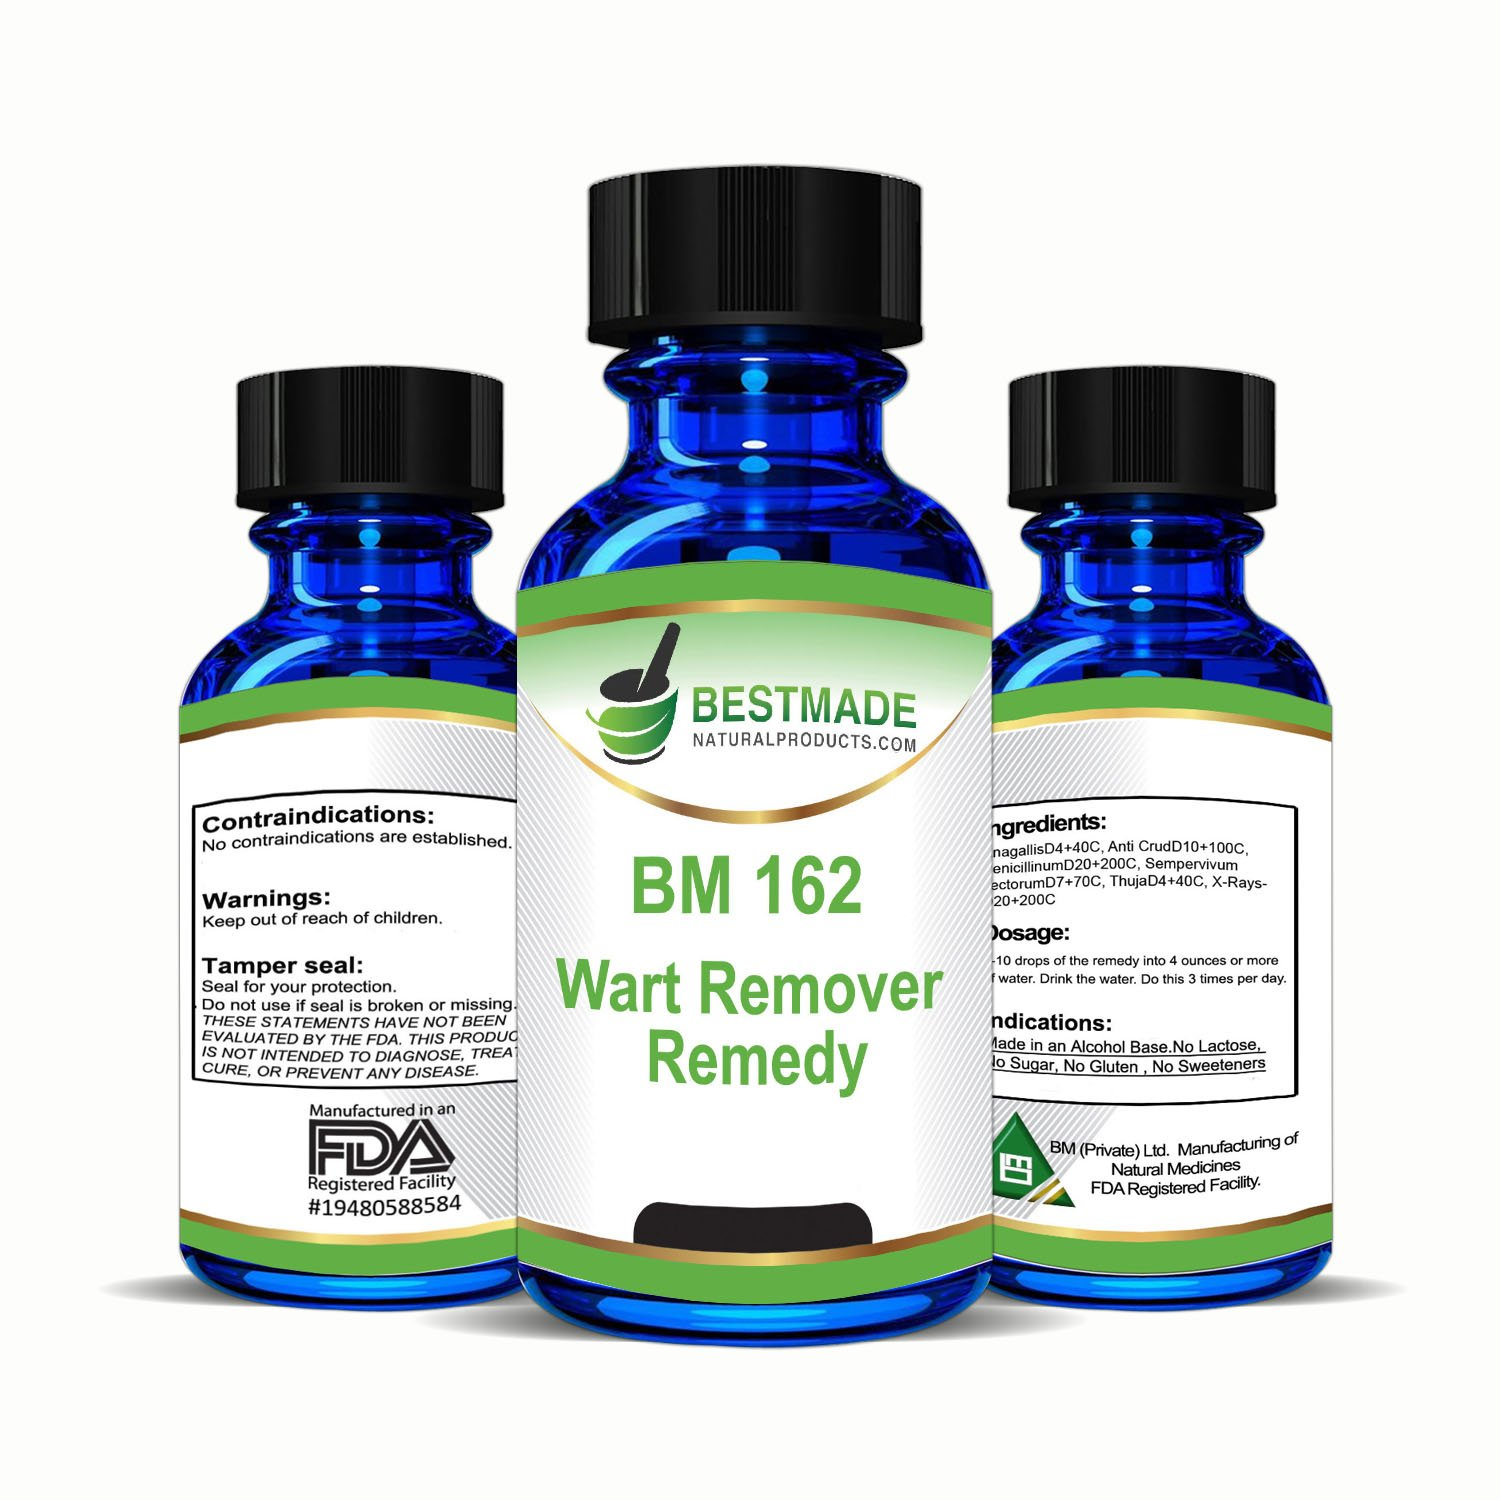 BestMade Natural Products Wart Remover Natural Remedy, Alternative Wart Removal, No Acids or Freezing for Feet, Body, Face and Hands